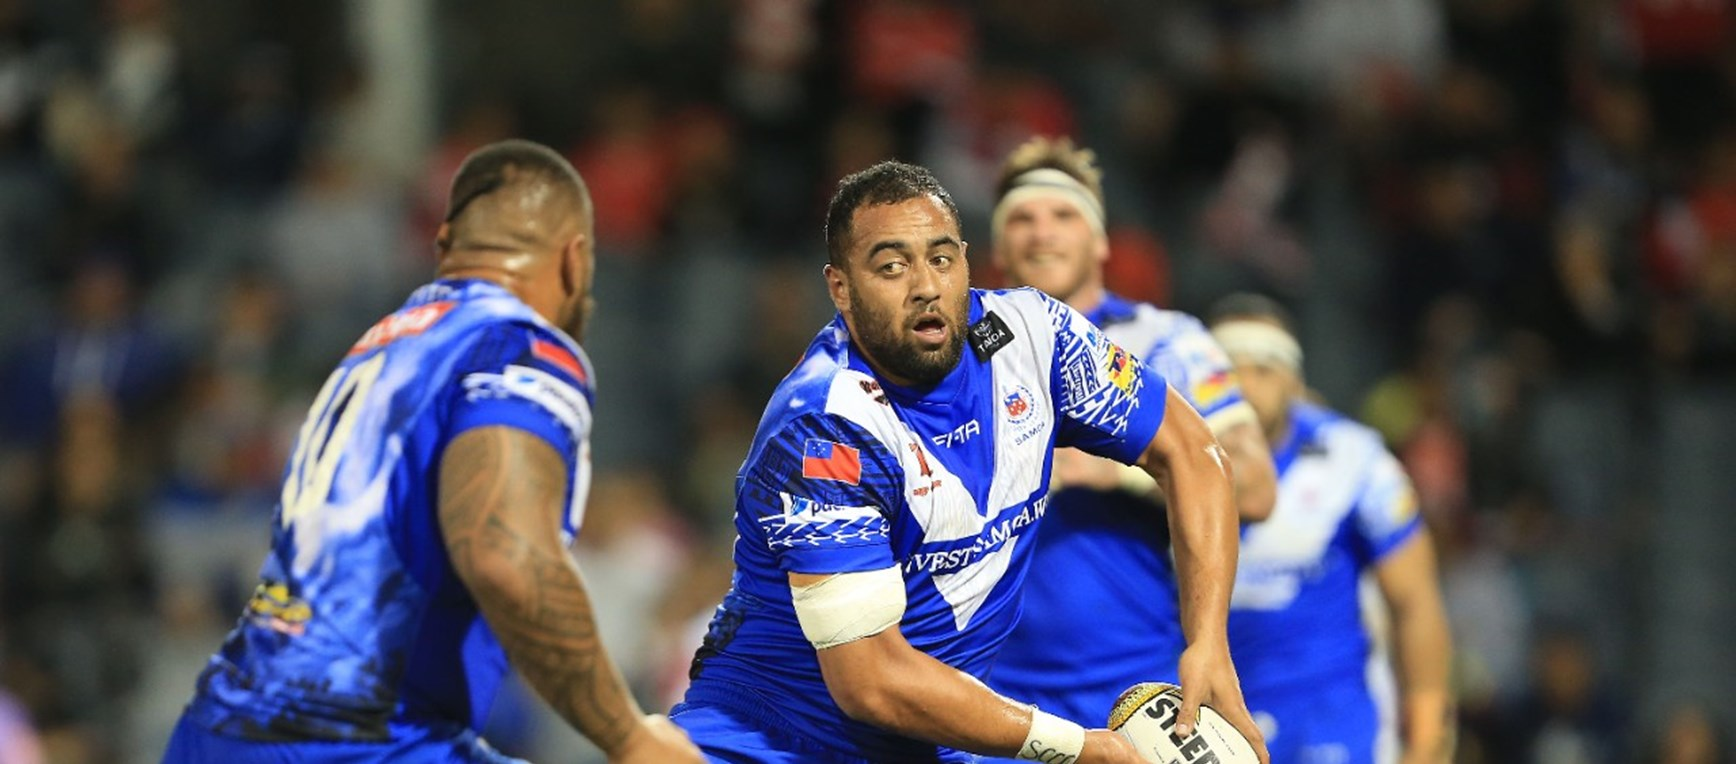 GALLERY: Bulldogs in Rep Round